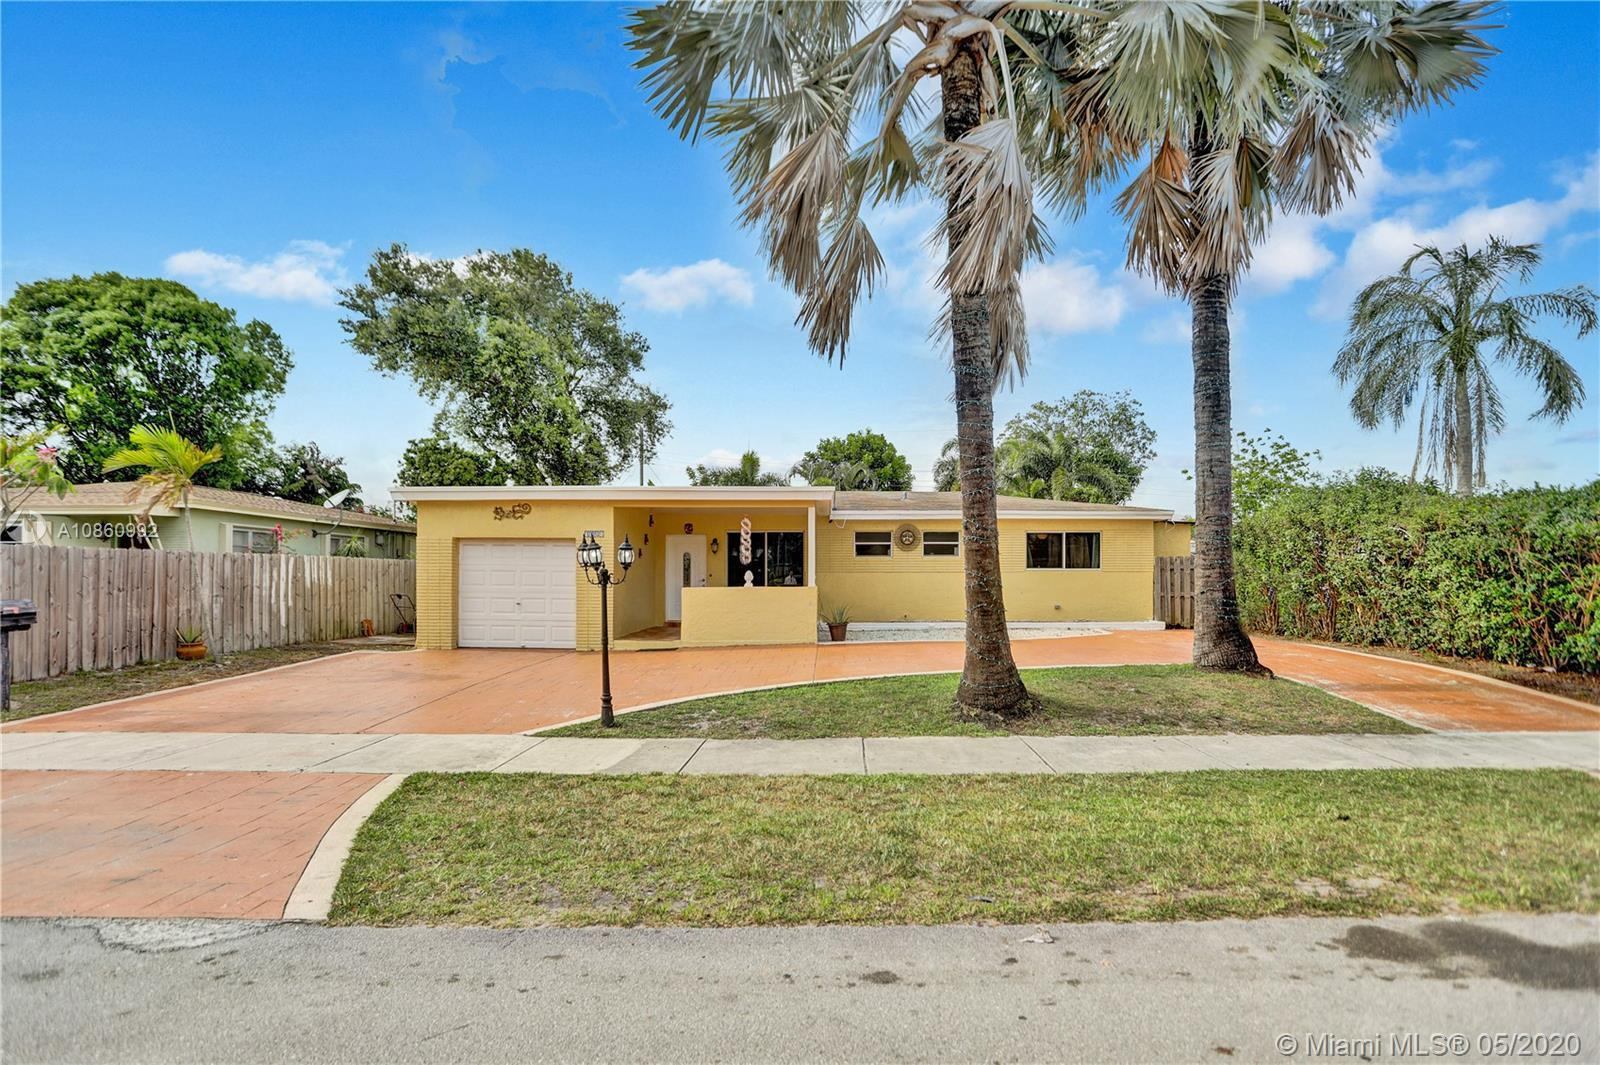 Come check out an awesome 4 bedroom/2 full bath Pool home with a garage in Riverland Village!!  This